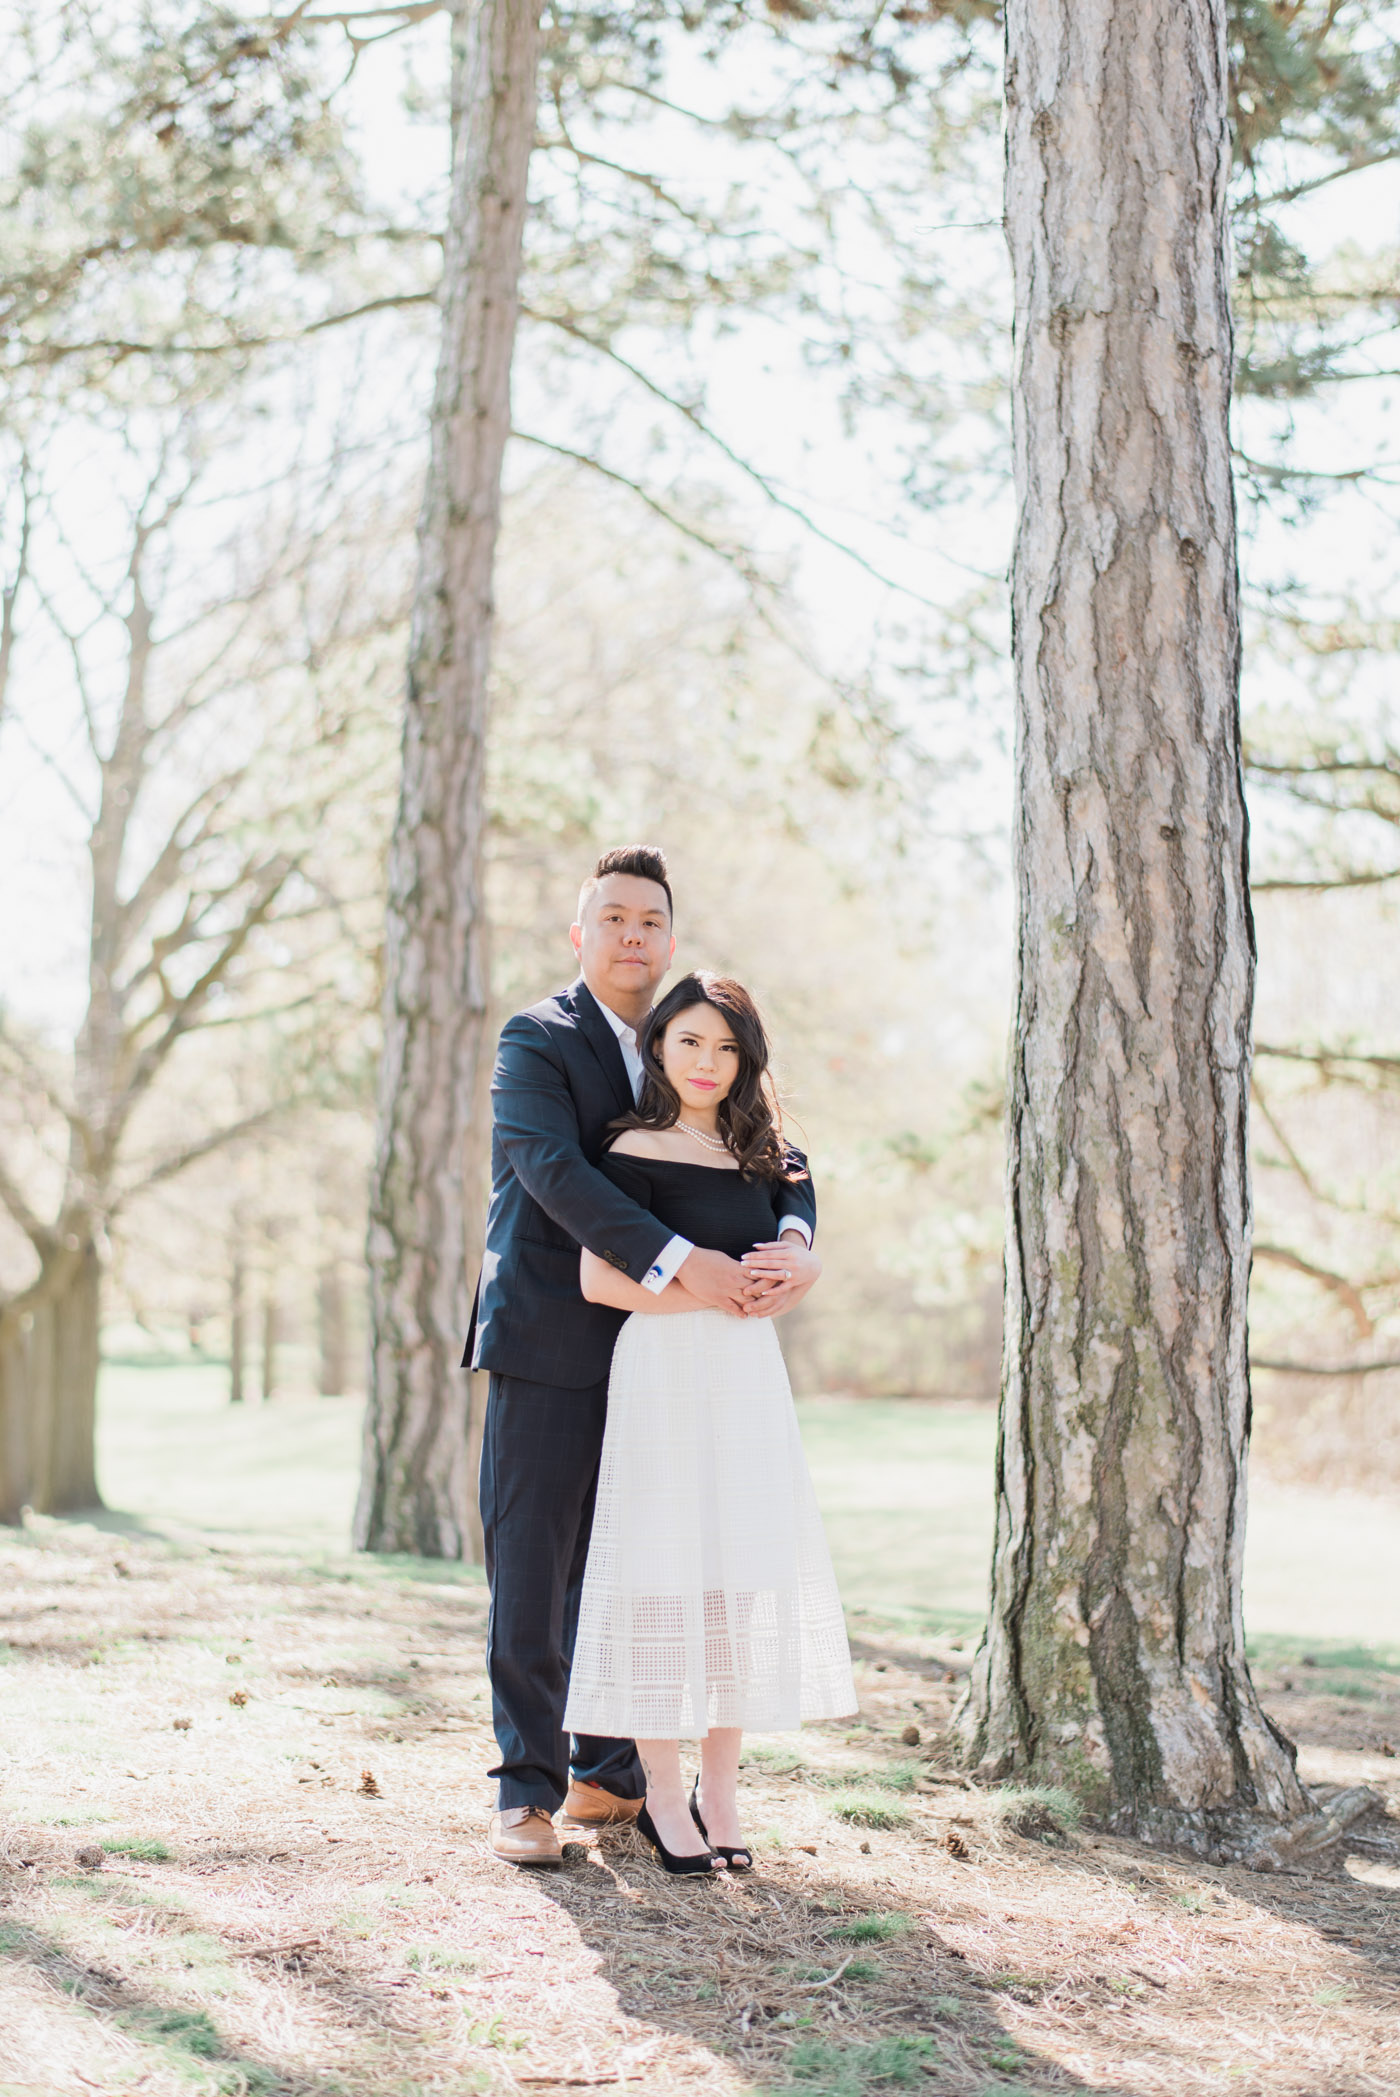 Elegant couple pose during engagement shoot at high park in toronto